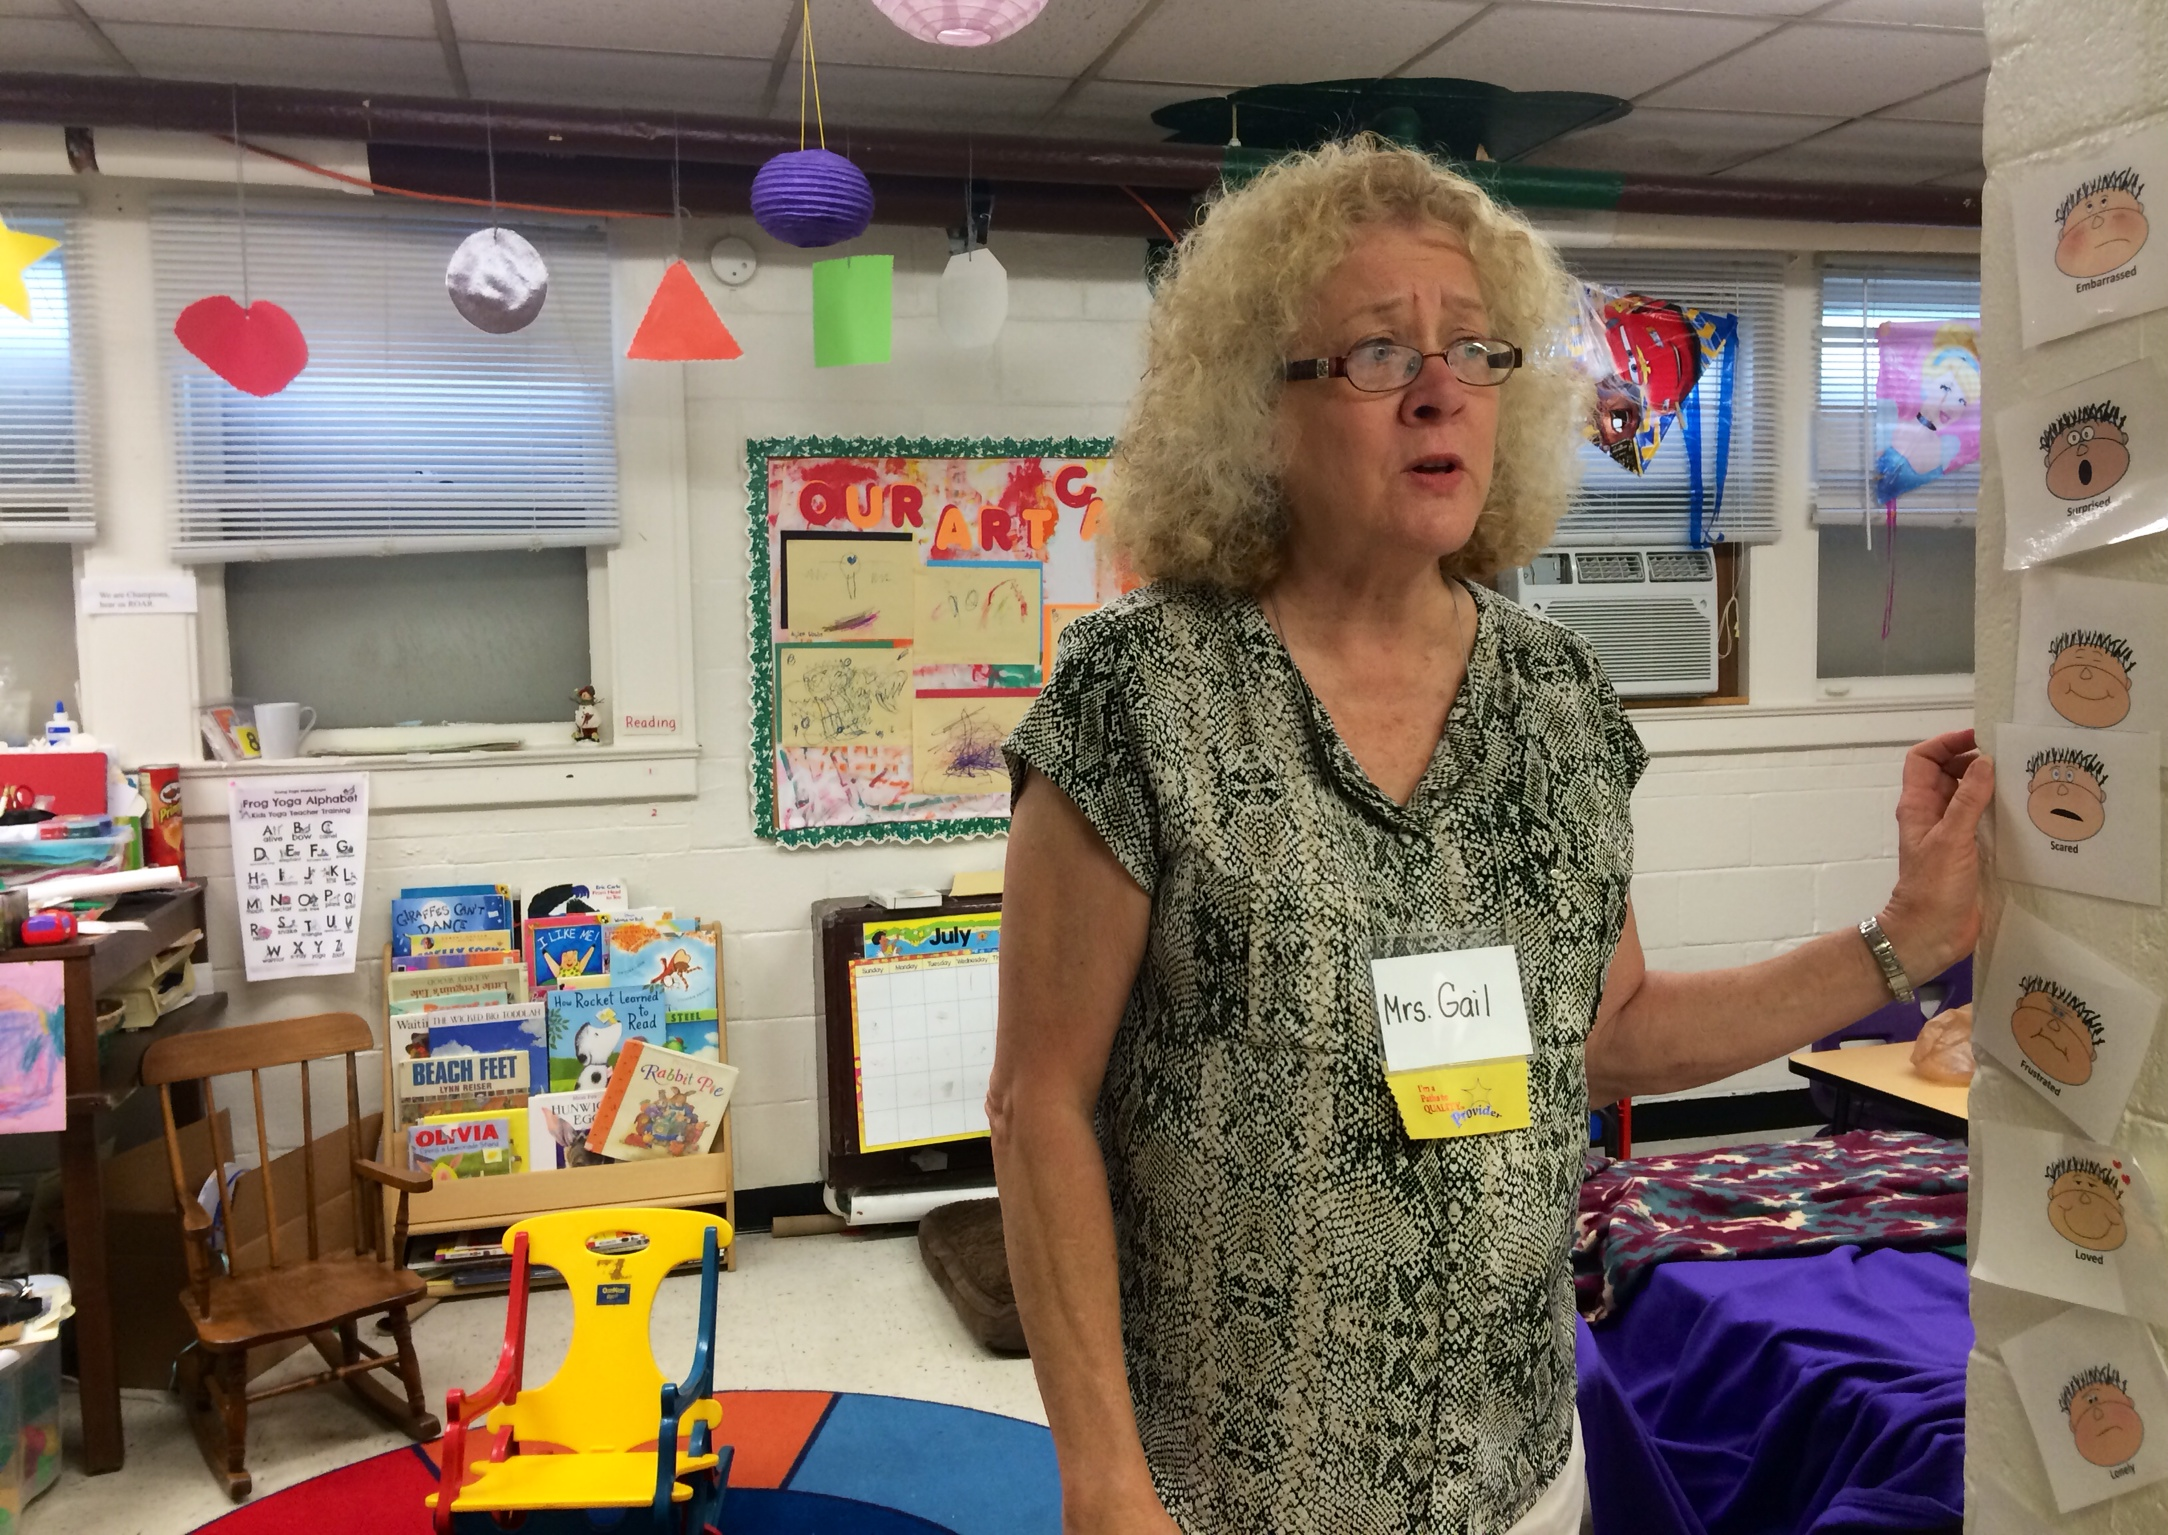 Gail Wolfe leads the preschool at Lynhurst Baptist Church. She's expanding her program to accommodate On My Way preschool participants.